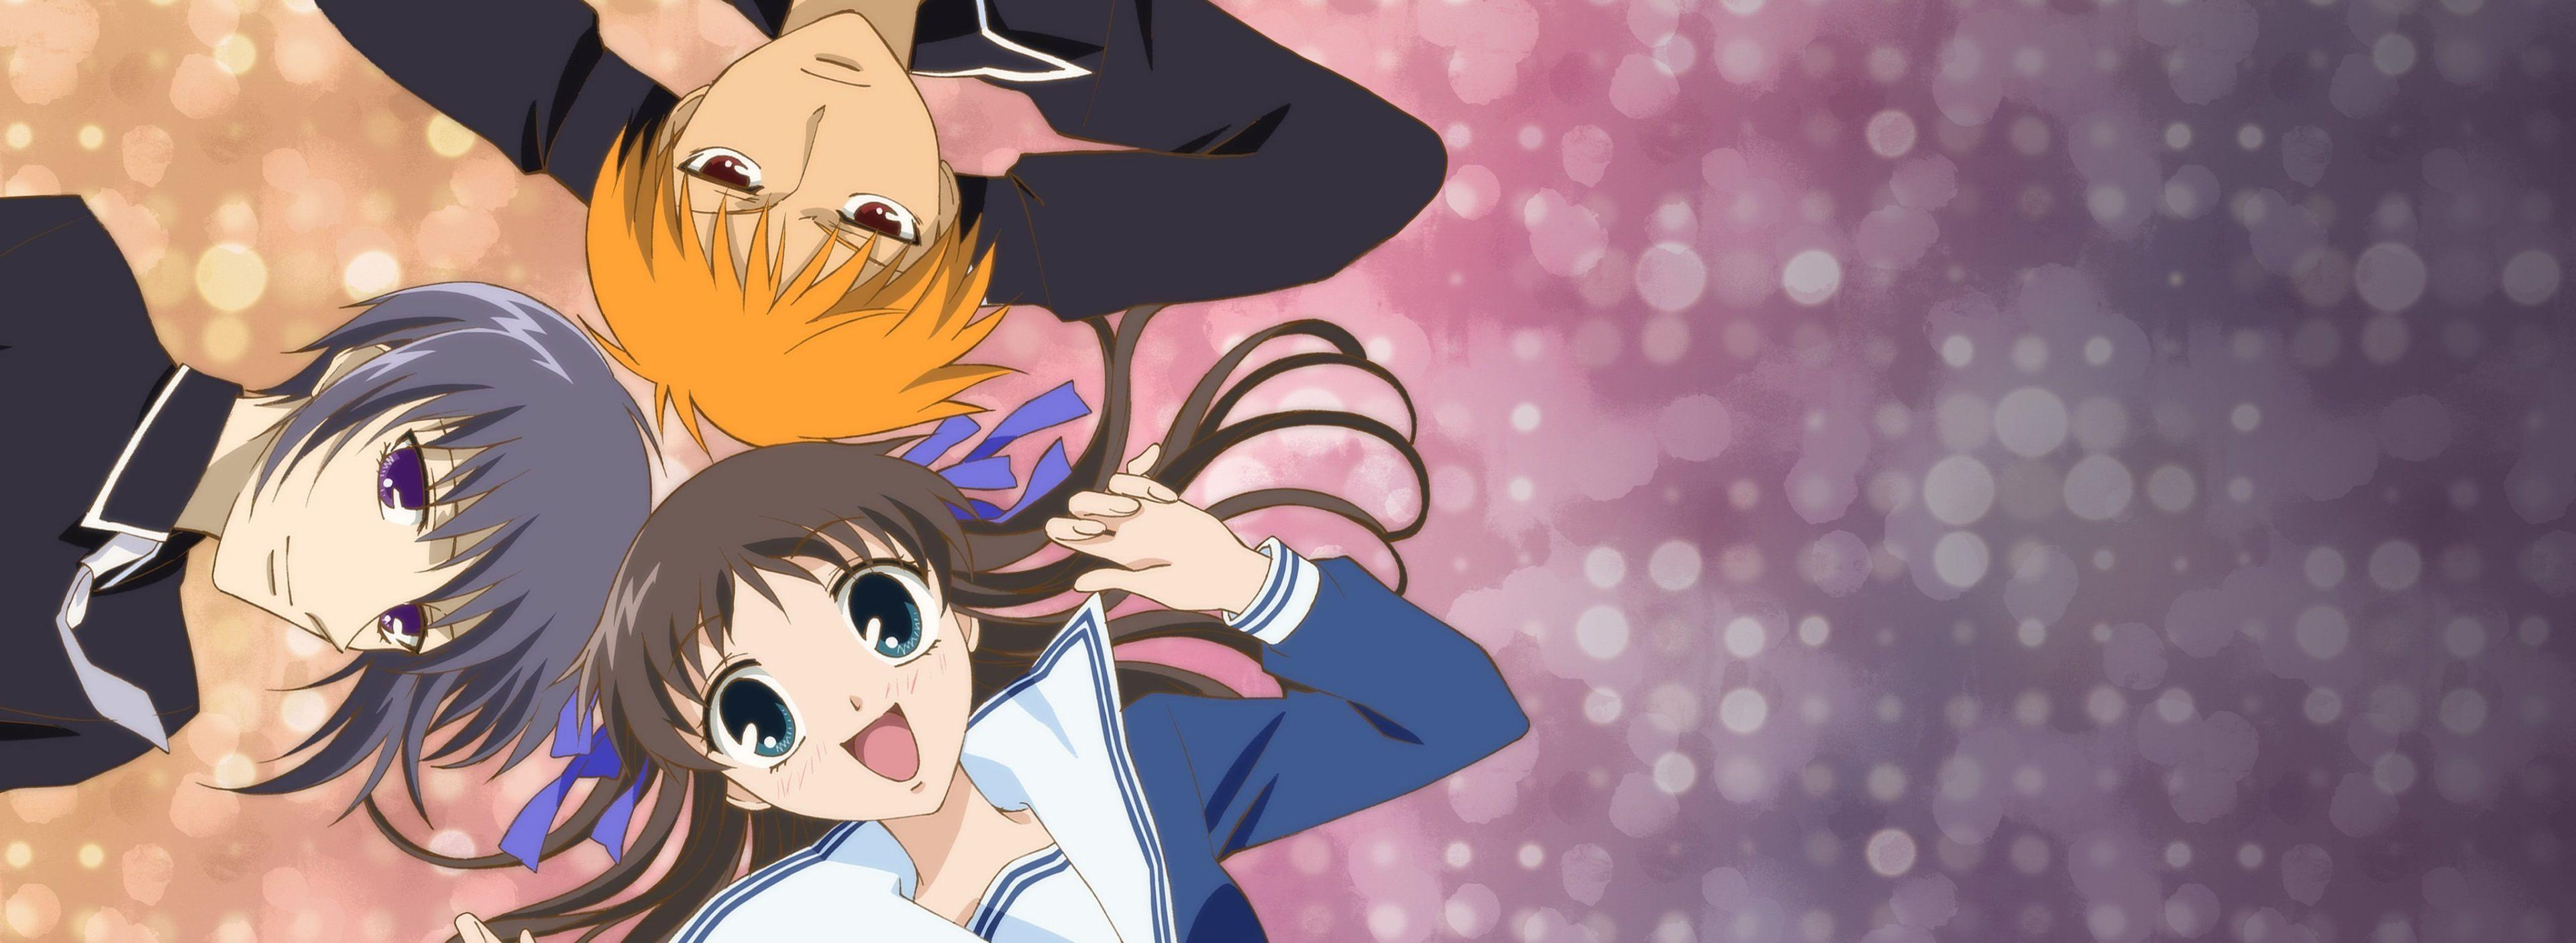 Anime Fruits Basket Wallpapers - Wallpaper Cave